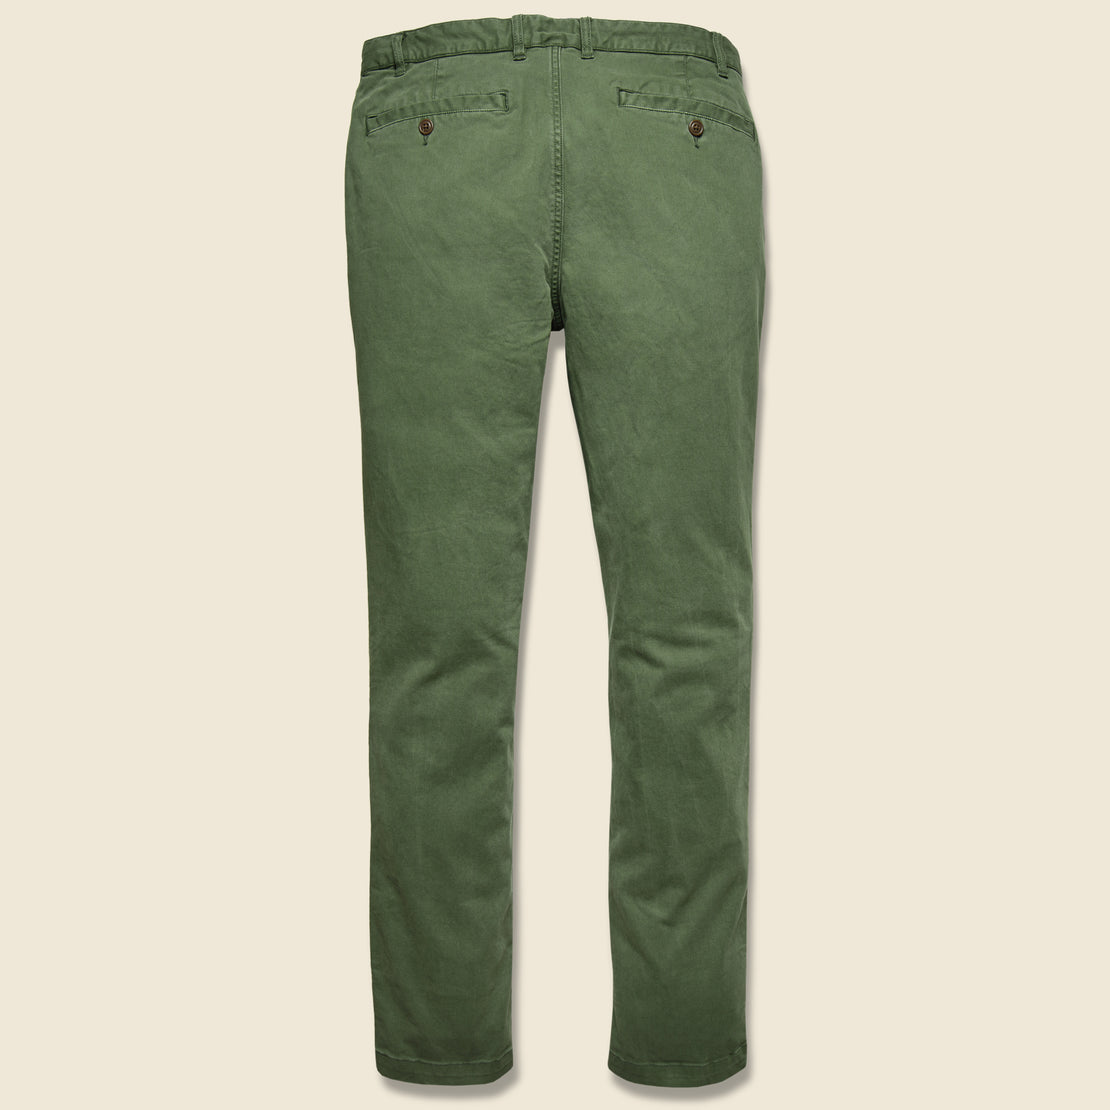 Stretch Canvas Trouser - Hunter Green